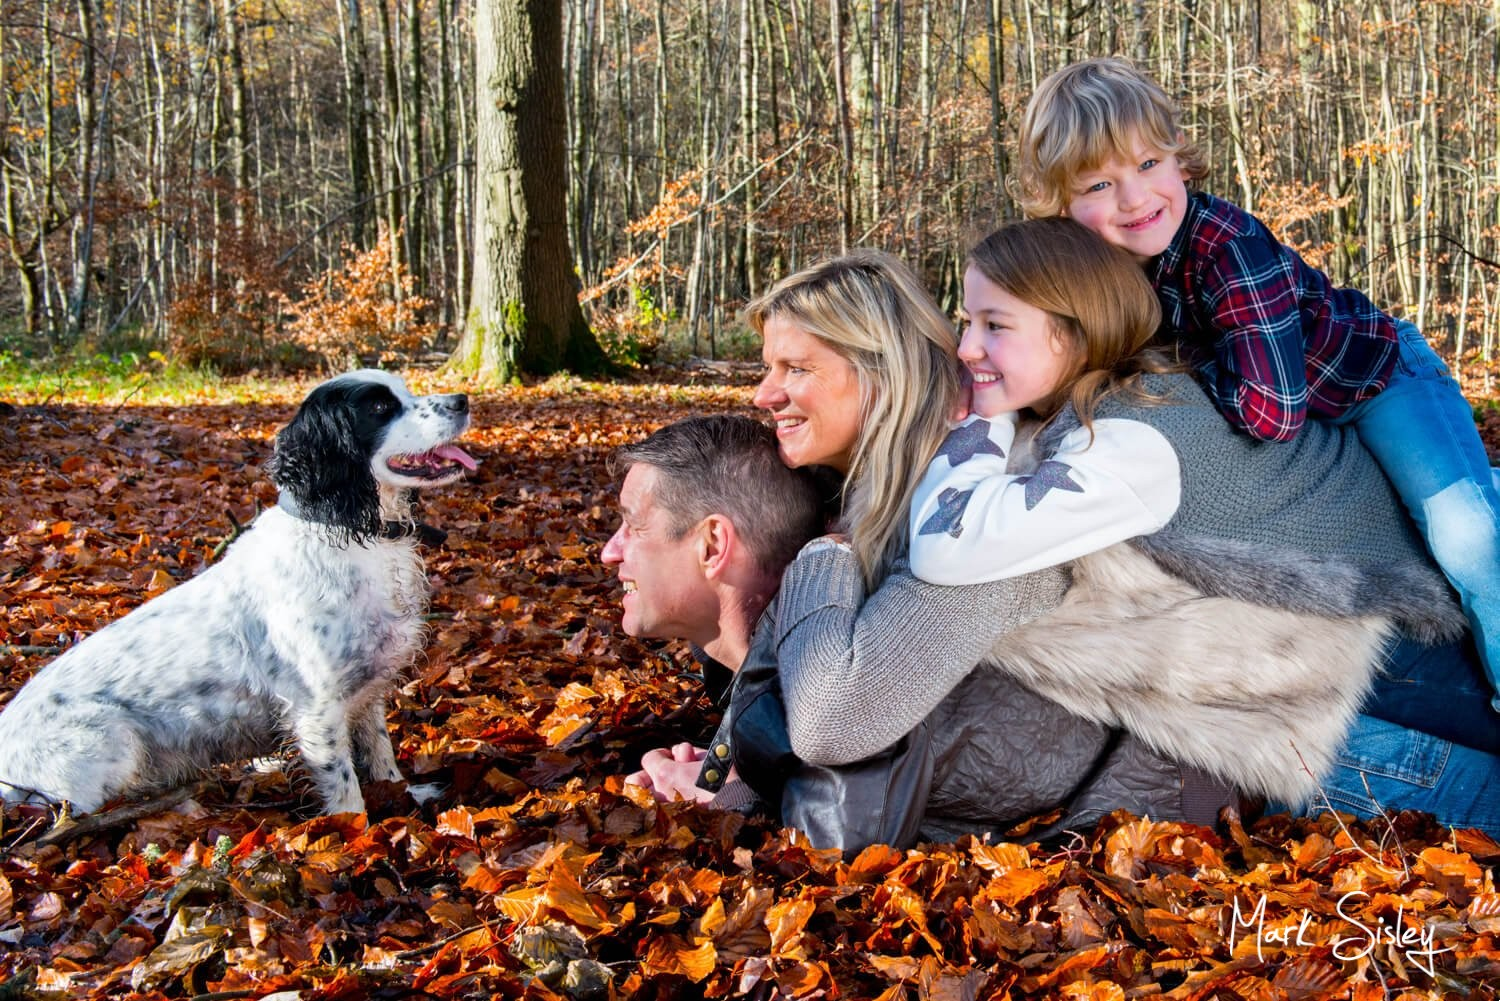 Amersham and Beaconsfield Autumn Family Portraits in nearby woodlands